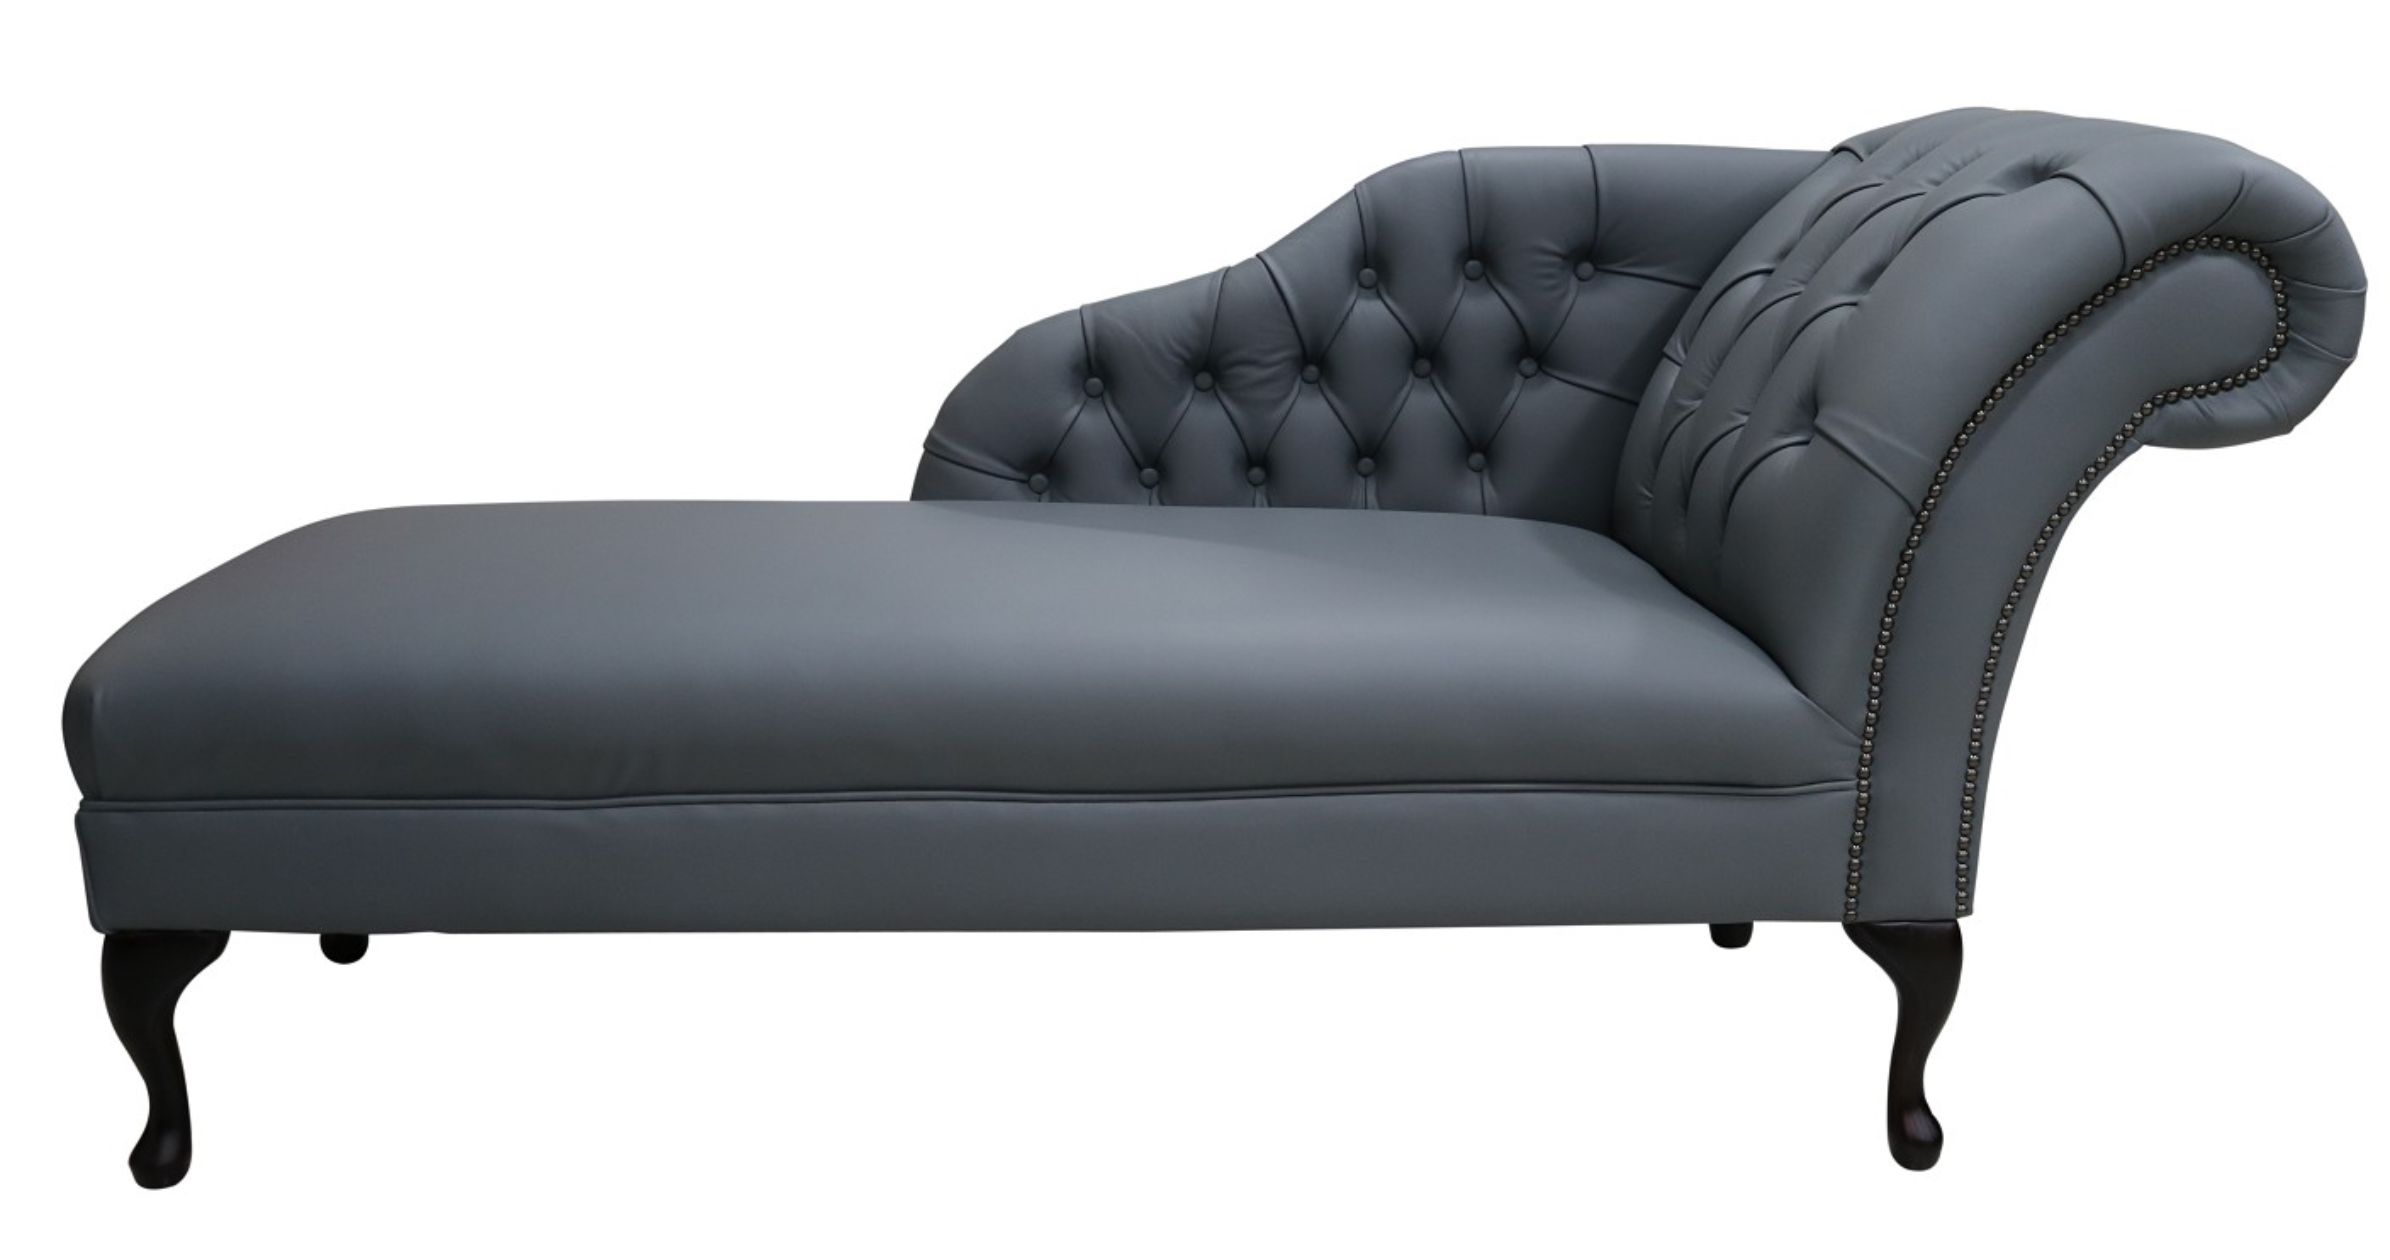 Chesterfield Leather Chaise Lounge Day Bed Designersofasu